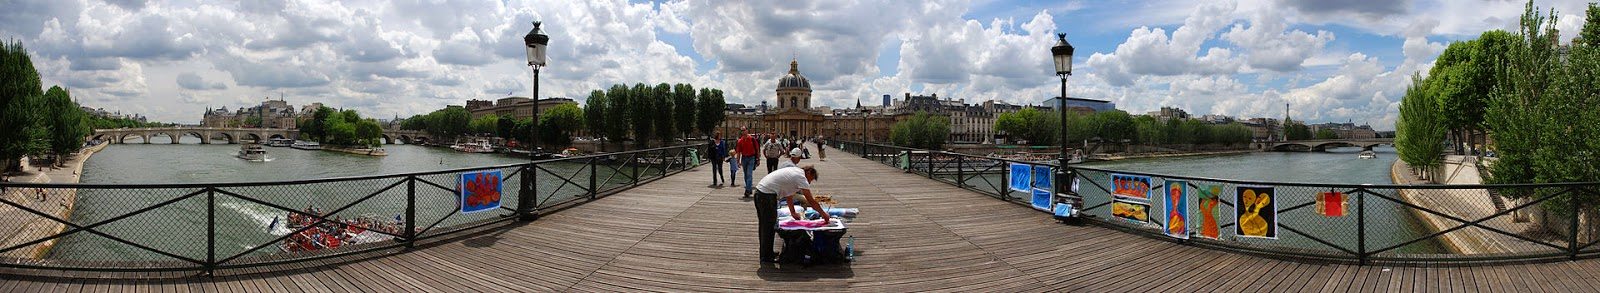 http://fr.wikipedia.org/wiki/Pont_des_Arts#/media/File:Seine_River_and_Bridge.jpg